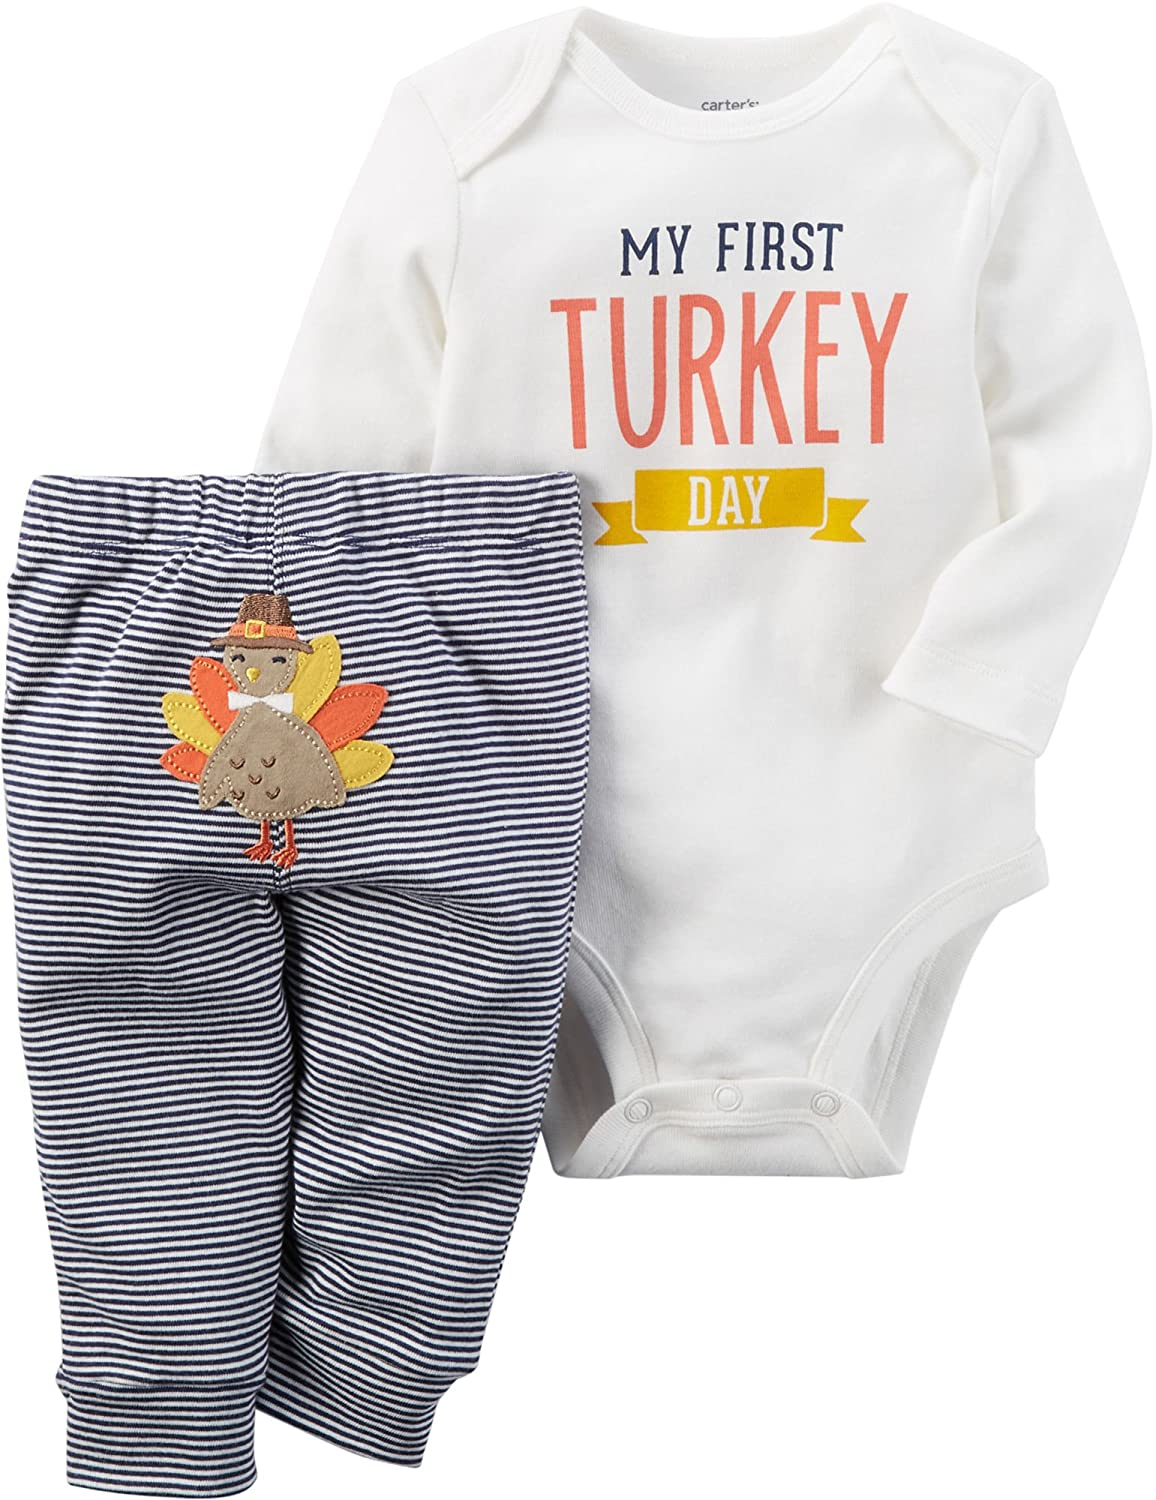 Carter's Baby My First Turkey 2-Piece Bodysuit Pants Set